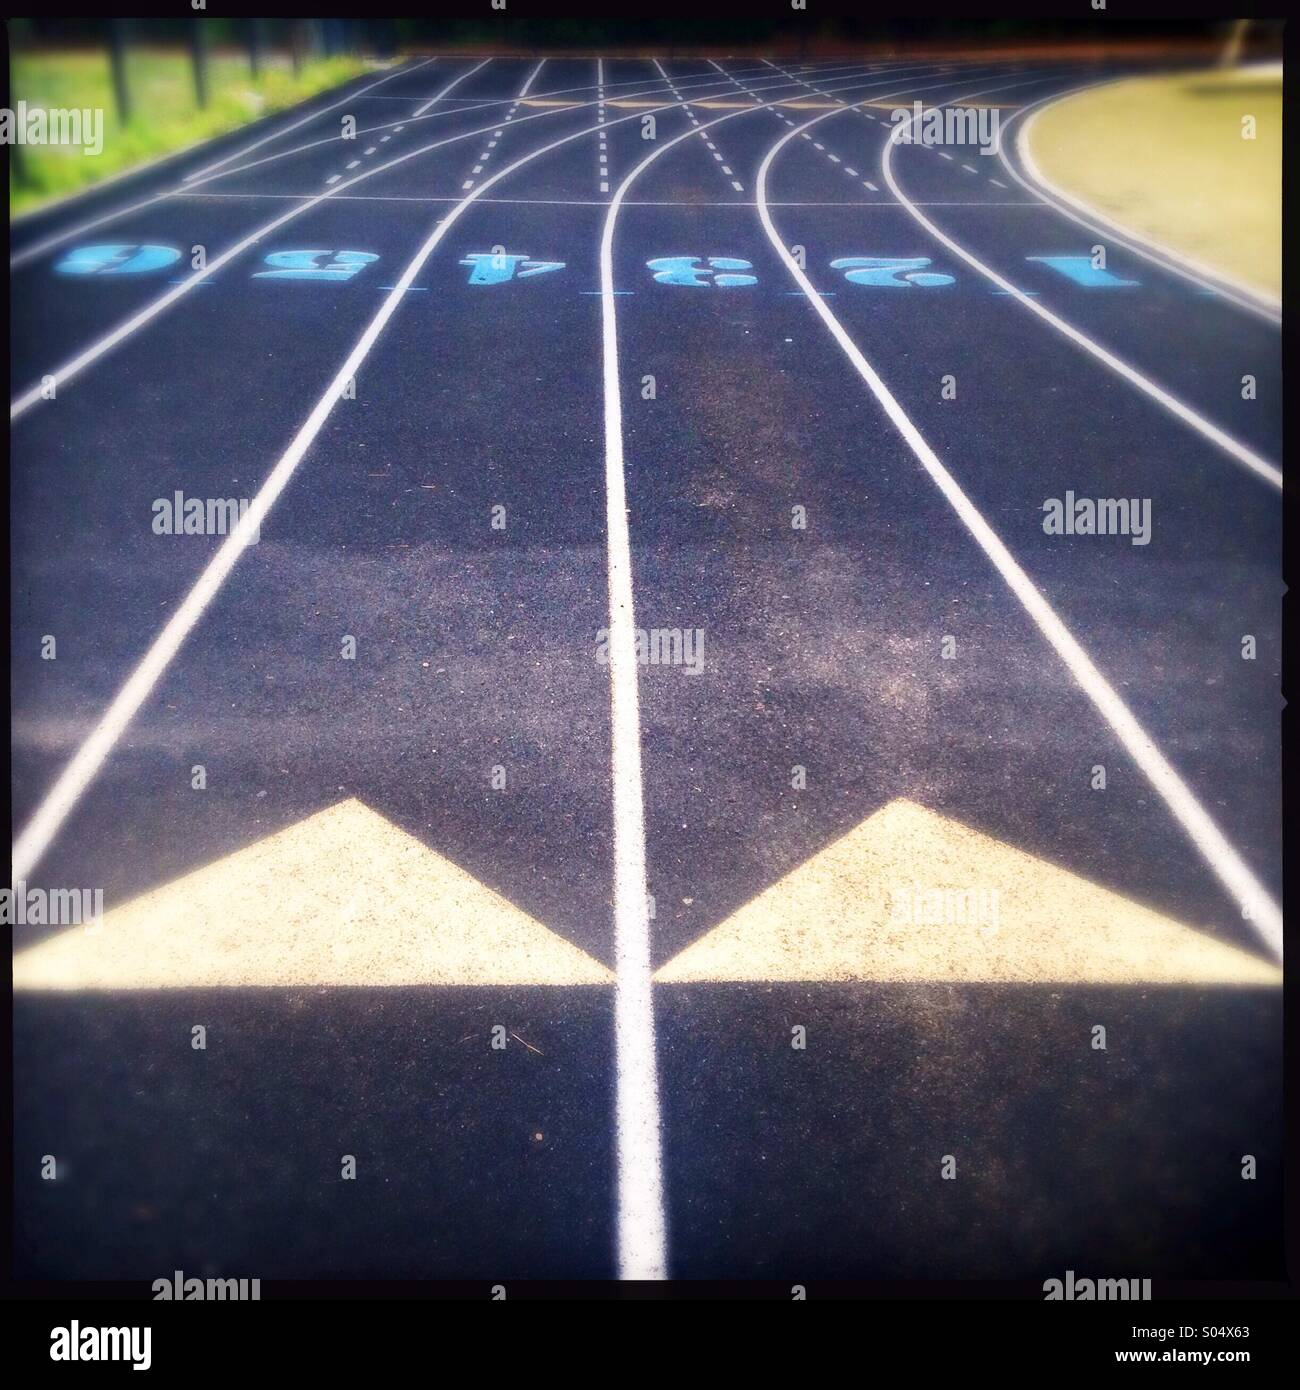 Track field - Stock Image